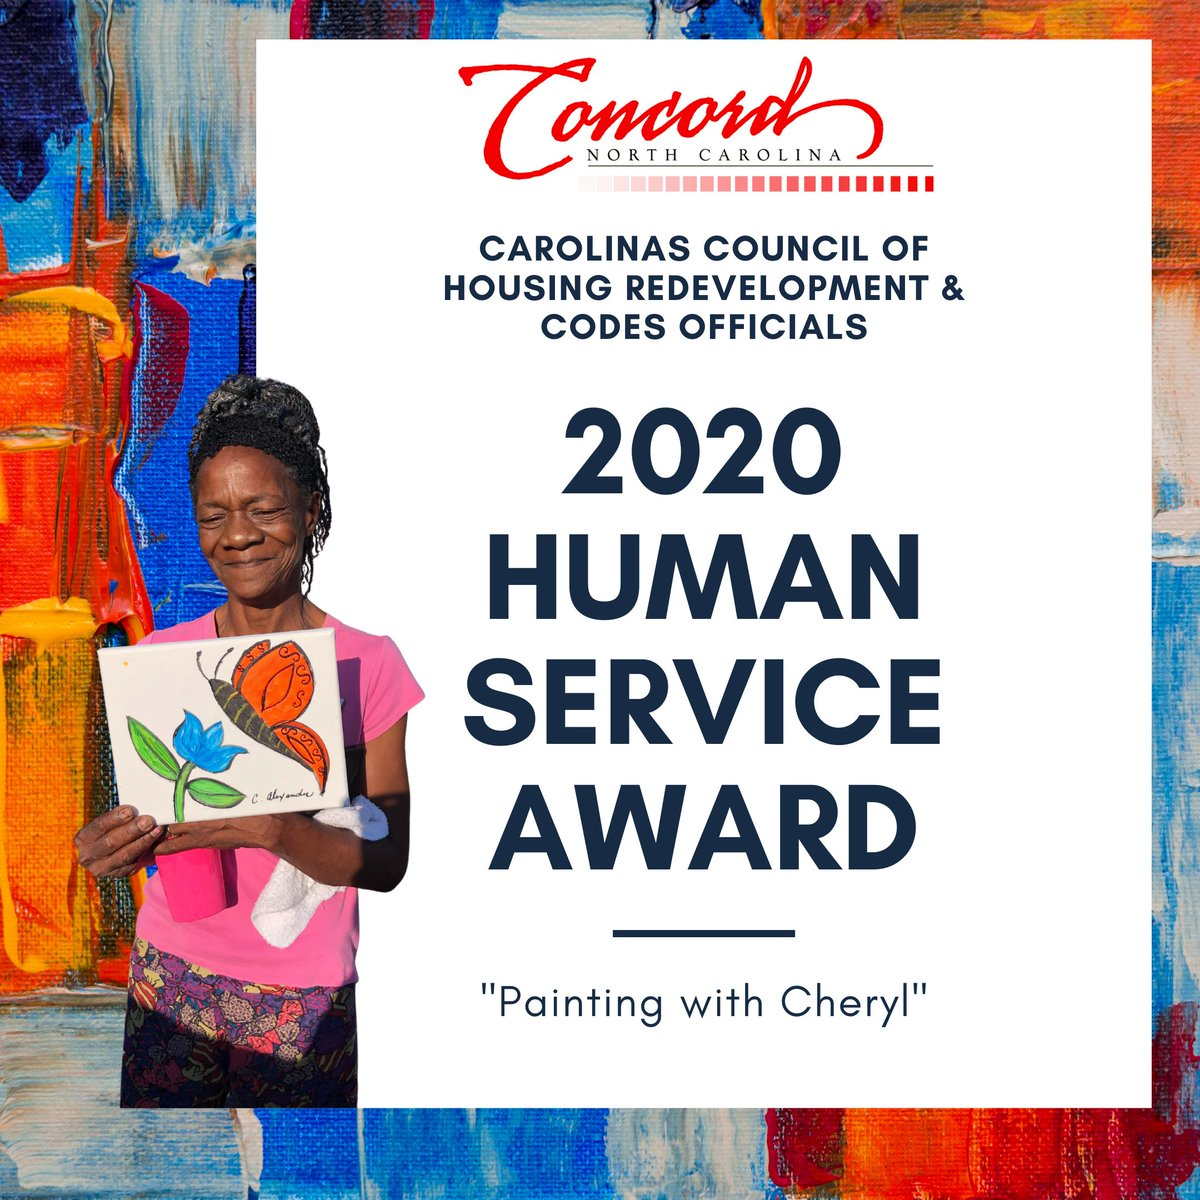 """🥳Exciting Announcement!   🏆The City of Concord Housing department has received The 2020 Human Service Award from Carolina Council of Housing Redevelopment & Codes Officials (CCHRCO) for their creative and mind-enhancing class, """" Painting with Cheryl."""""""